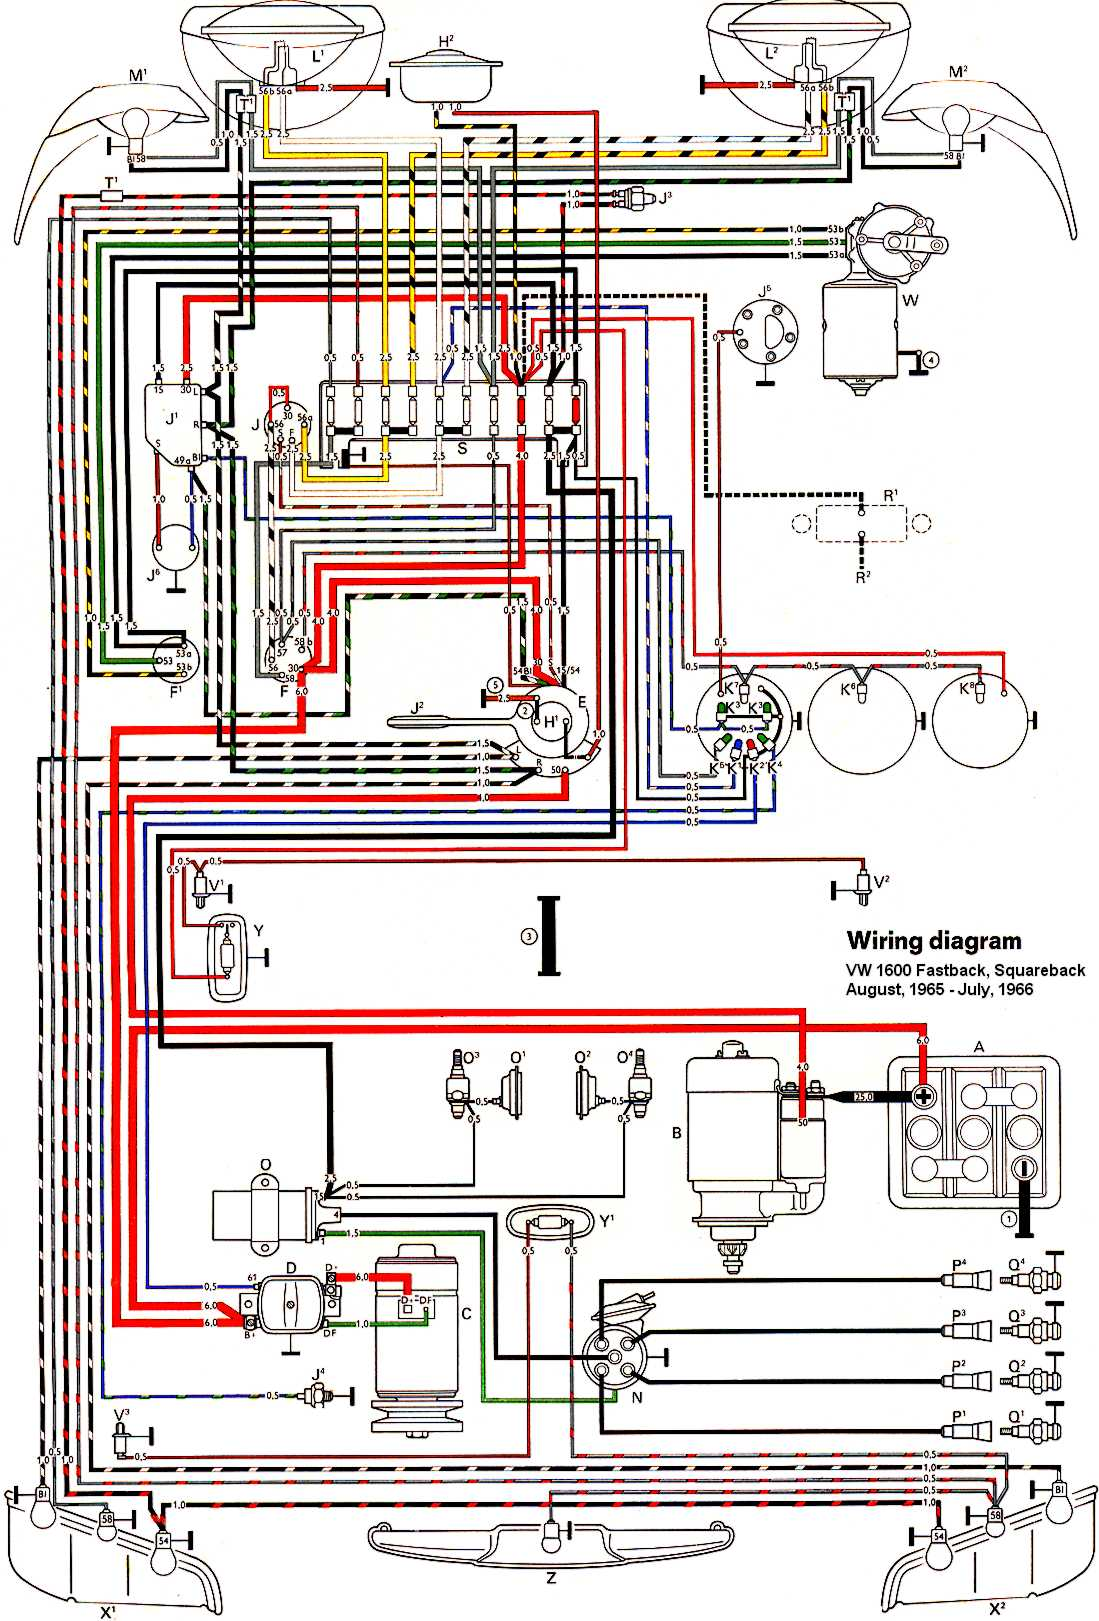 type3_1600_66 vw bus wiring diagram 1965 vw bus wiring diagram \u2022 wiring diagrams 1970 vw bug wiring diagram at fashall.co